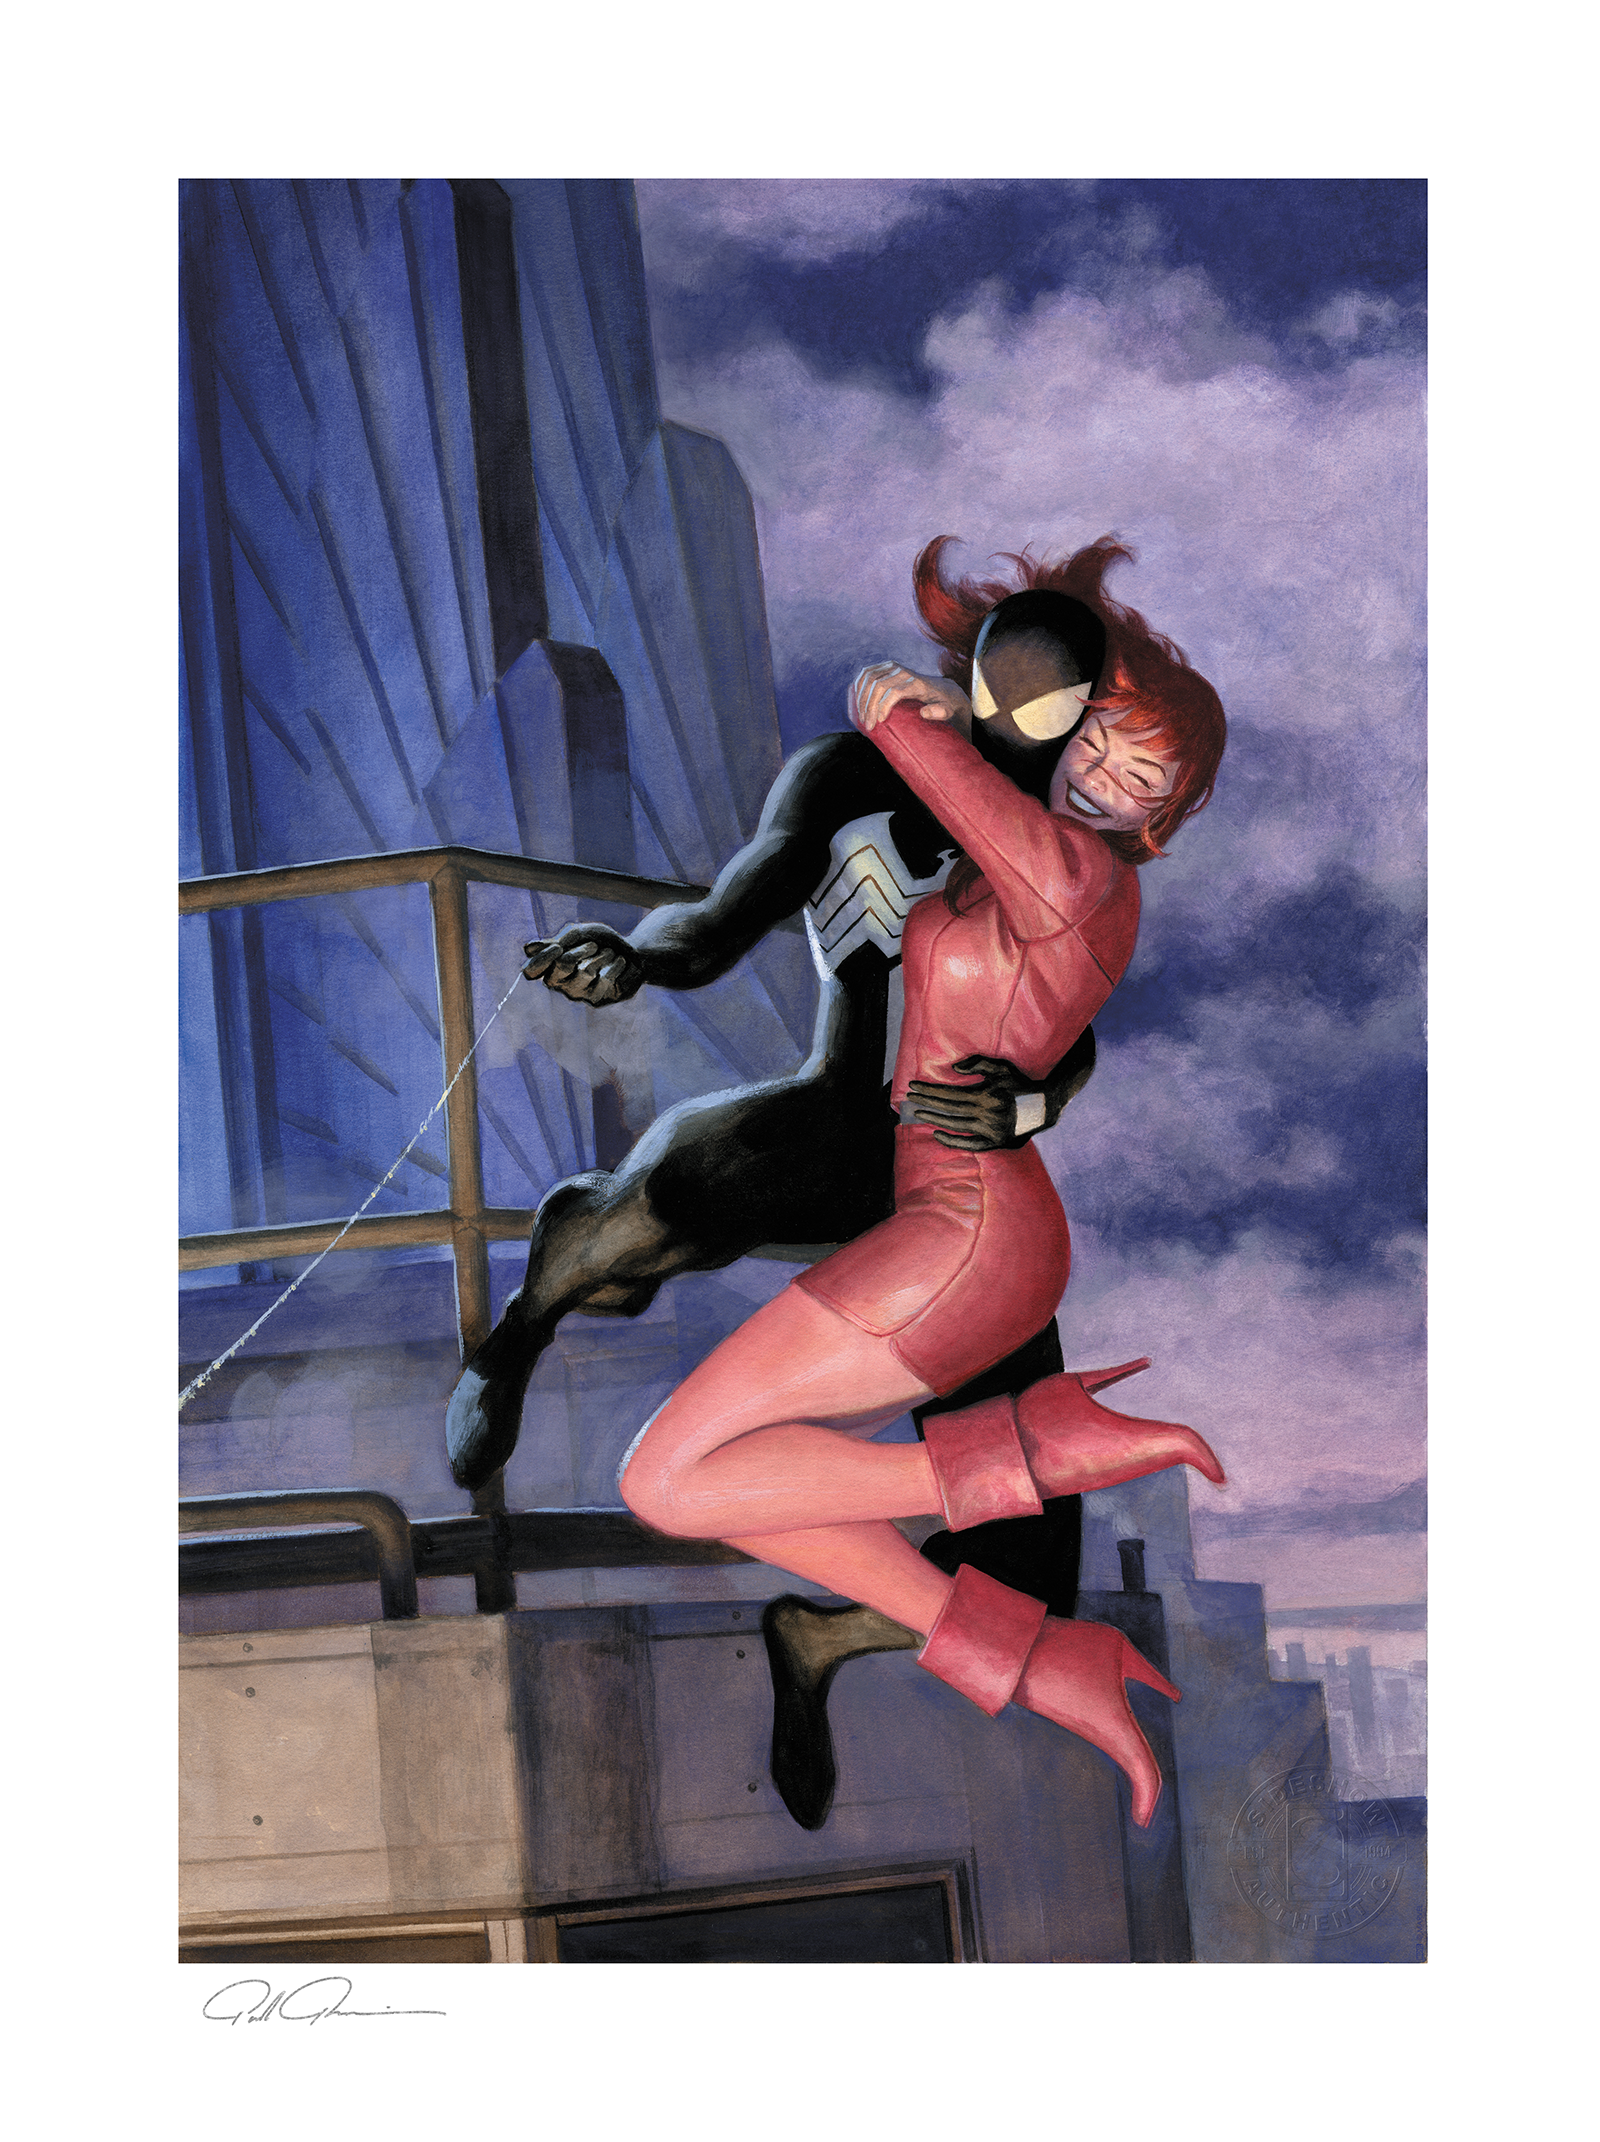 Sideshow Collectibles The Amazing Spider-Man #638: One Moment In Time Art Print